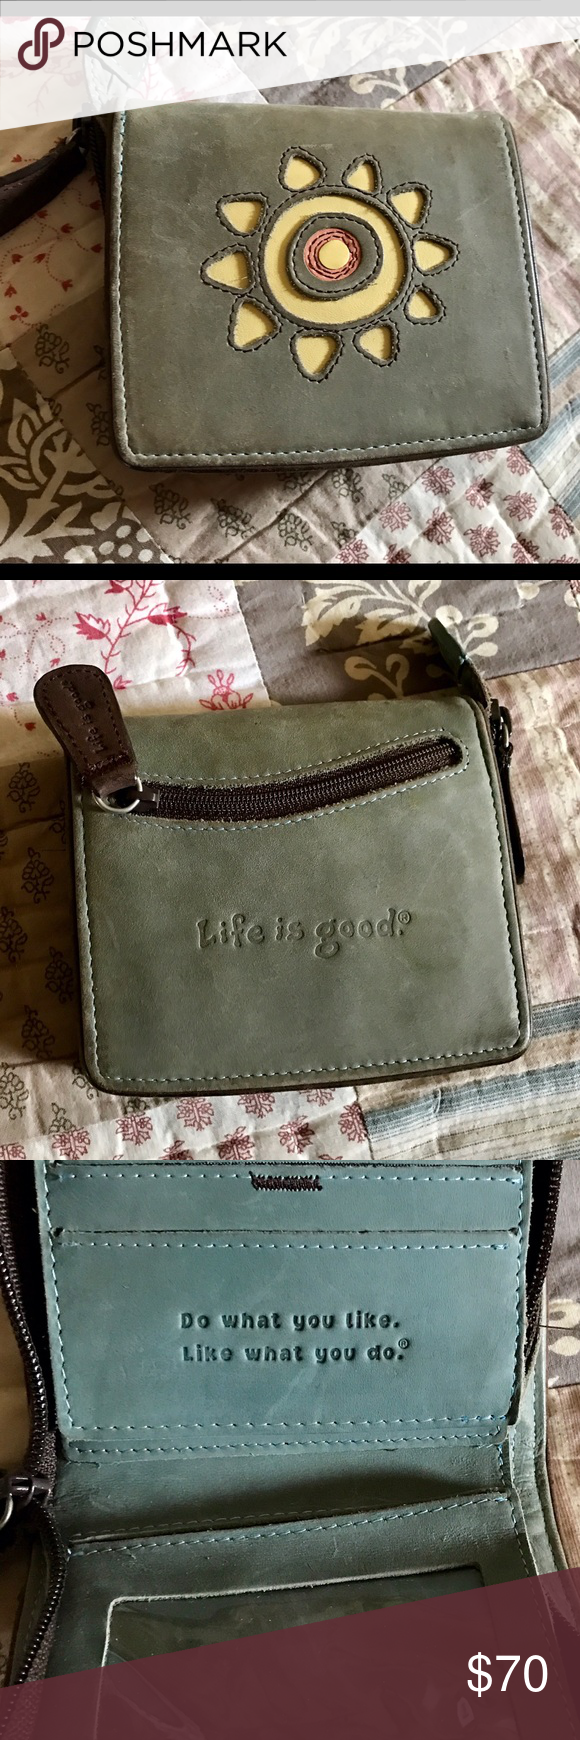 Life is good wallet Cute handcrafted leather wallet with